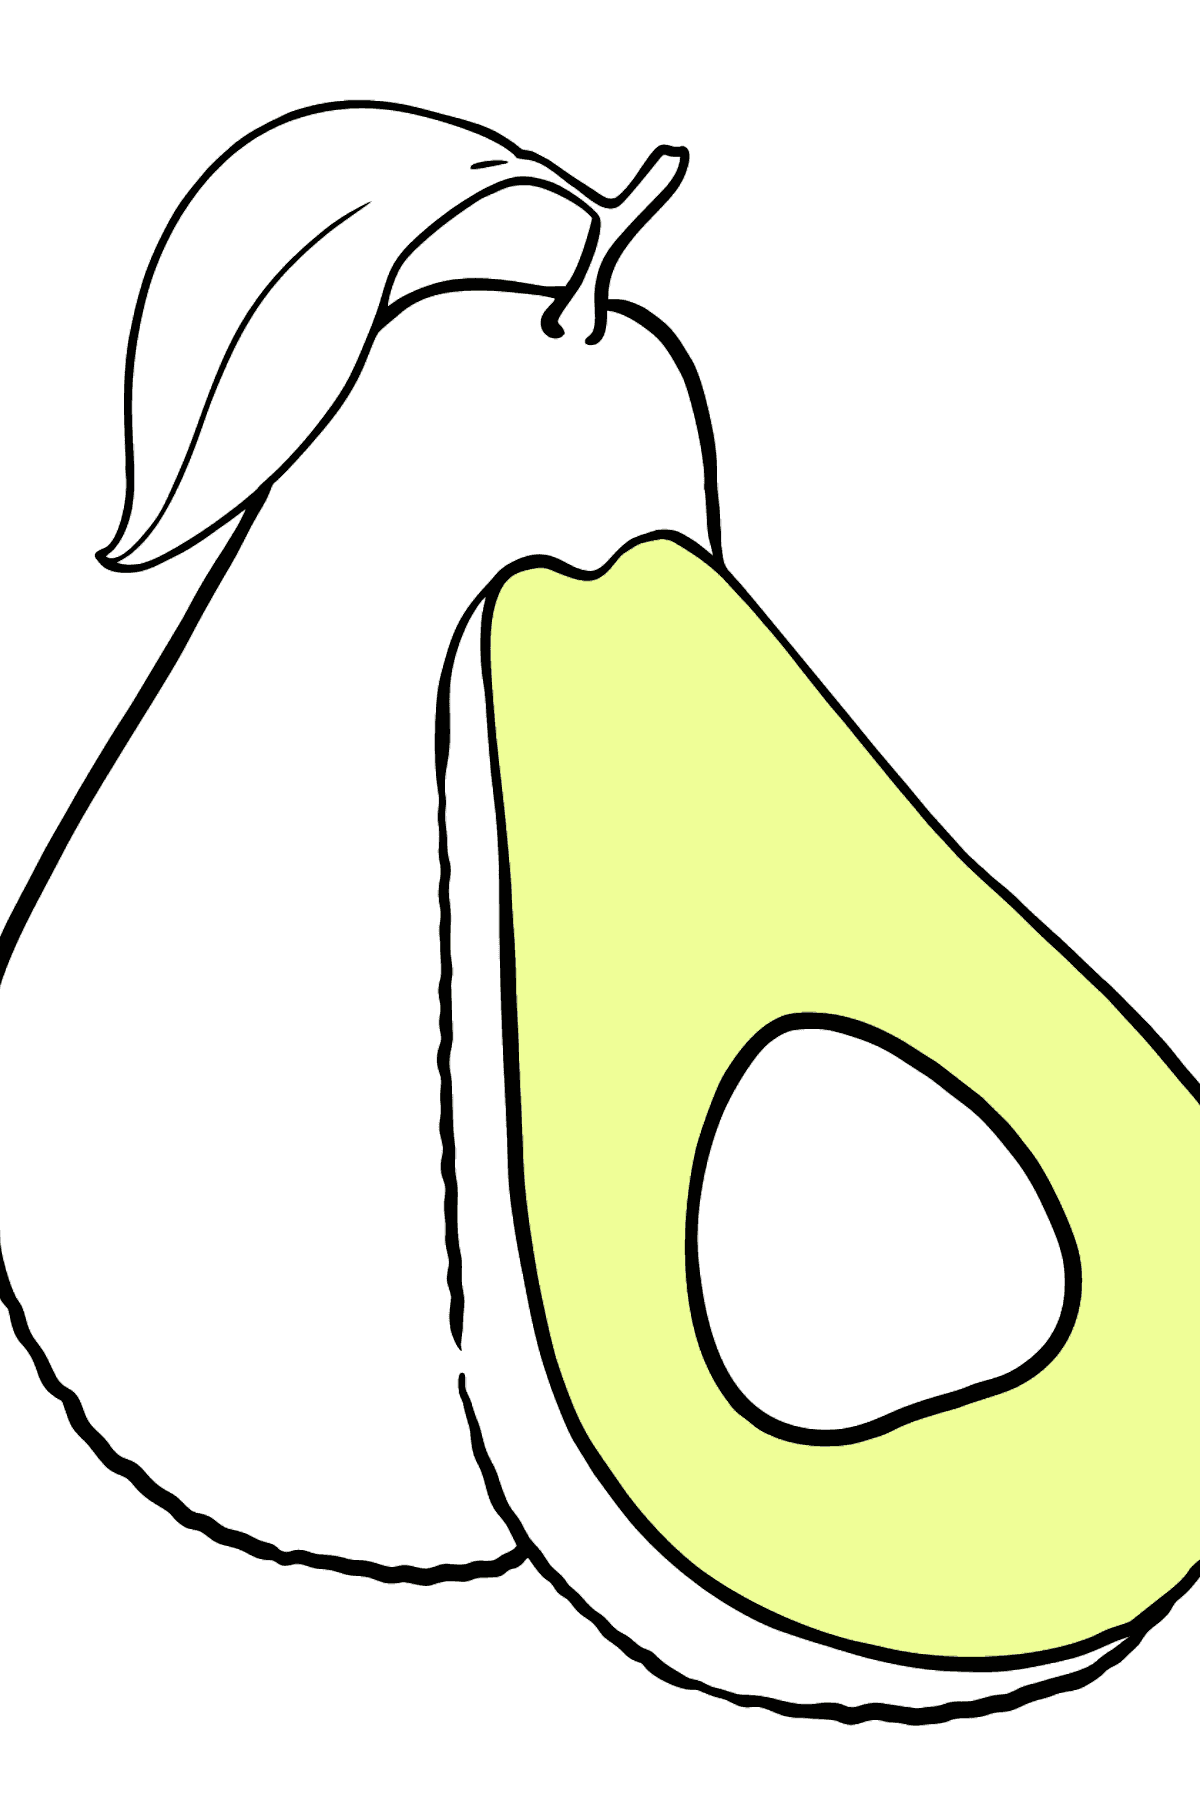 Avocado coloring page - Coloring Pages for Kids